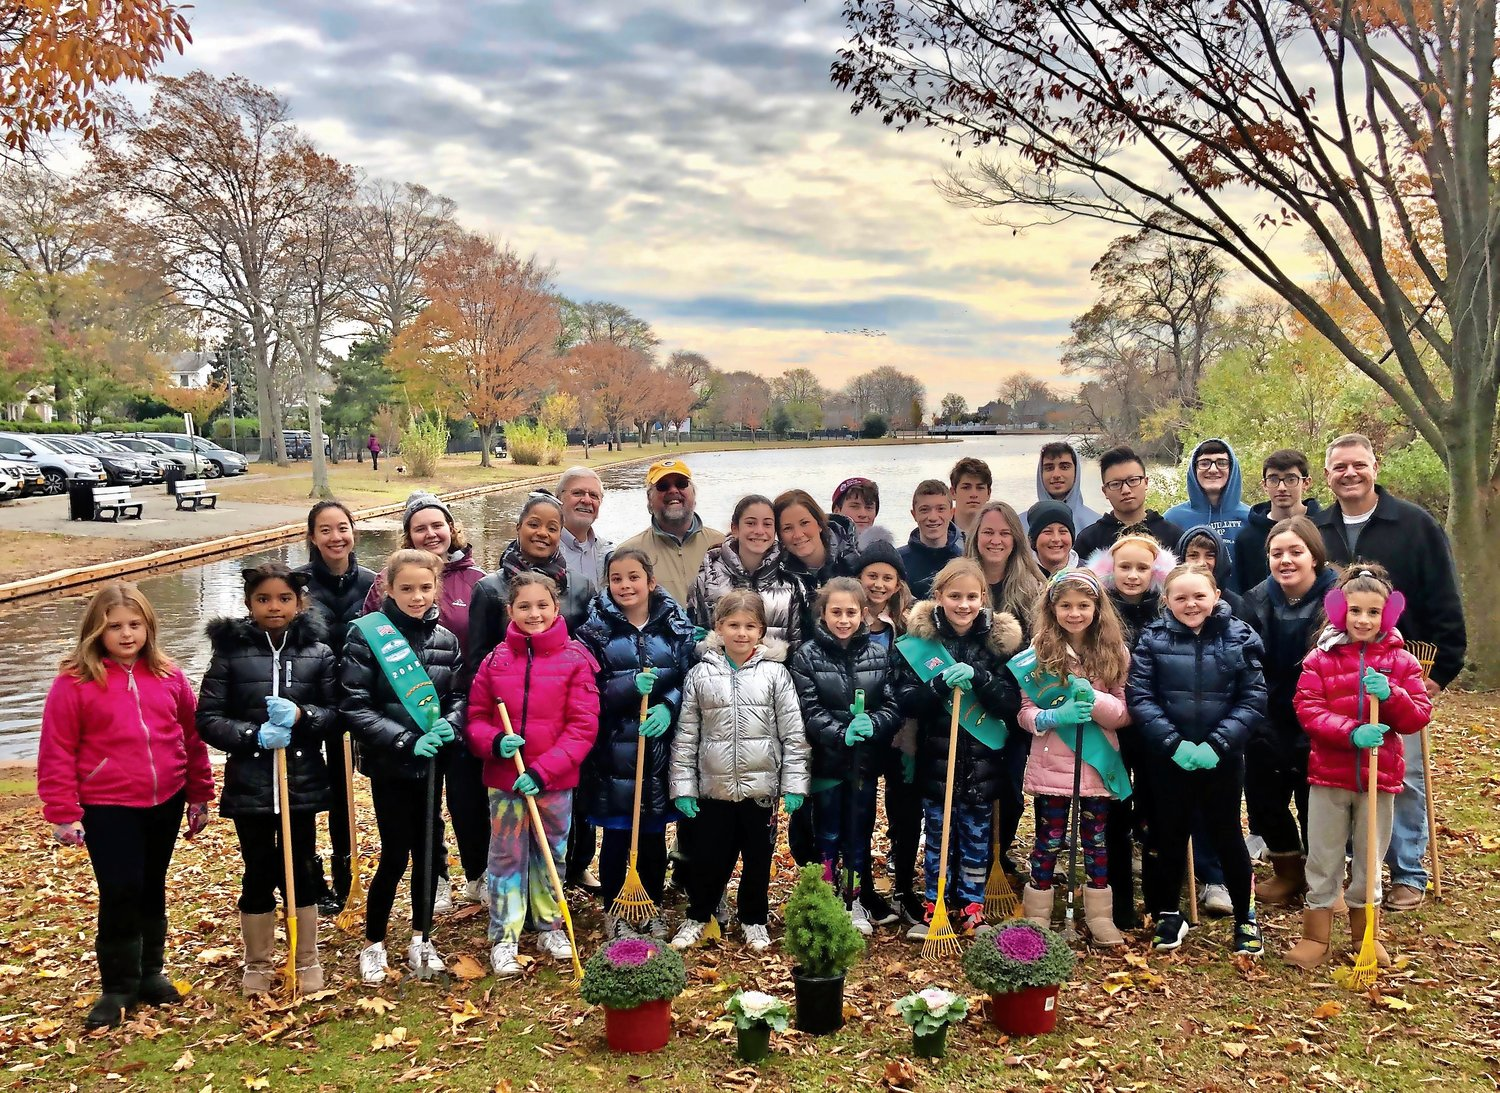 More than 20 of Merrick's youth gathered at Cammanns Pond Park on Nov. 10 for some fall cleaning.